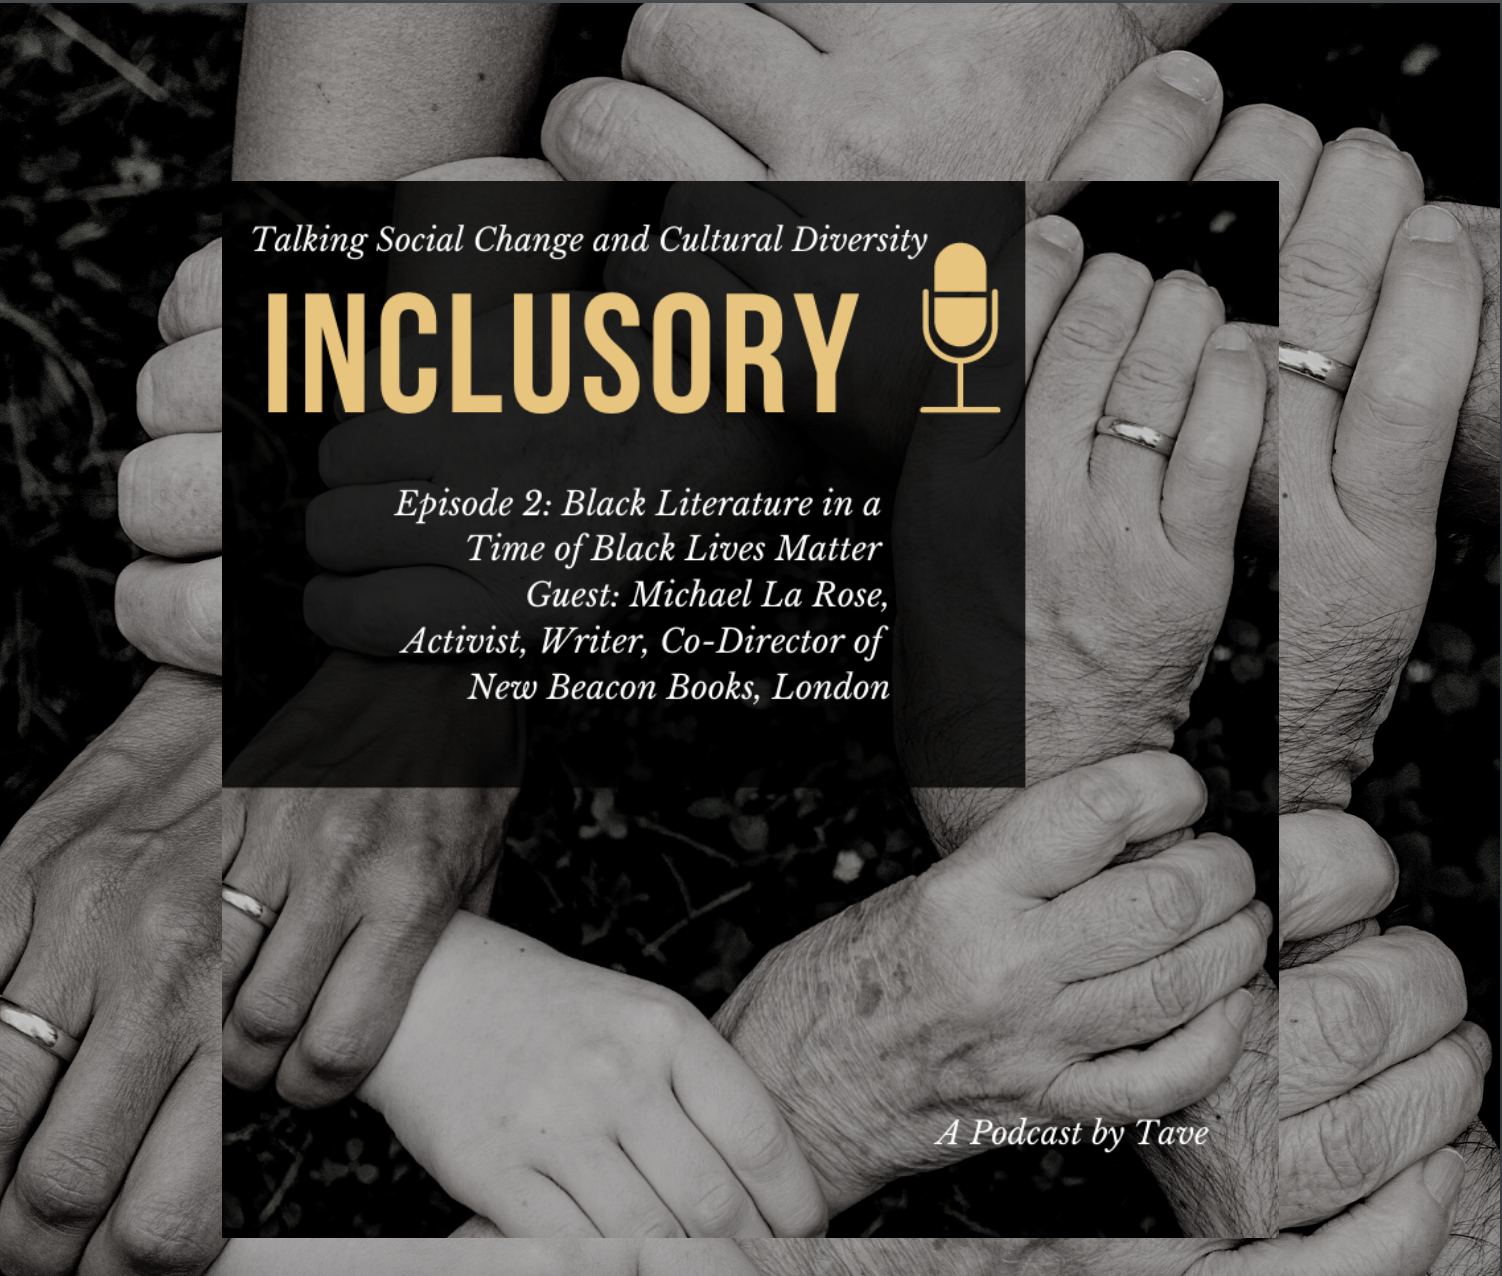 Inclusory Episode 2: Black Literature in a Time of Black Lives Matter